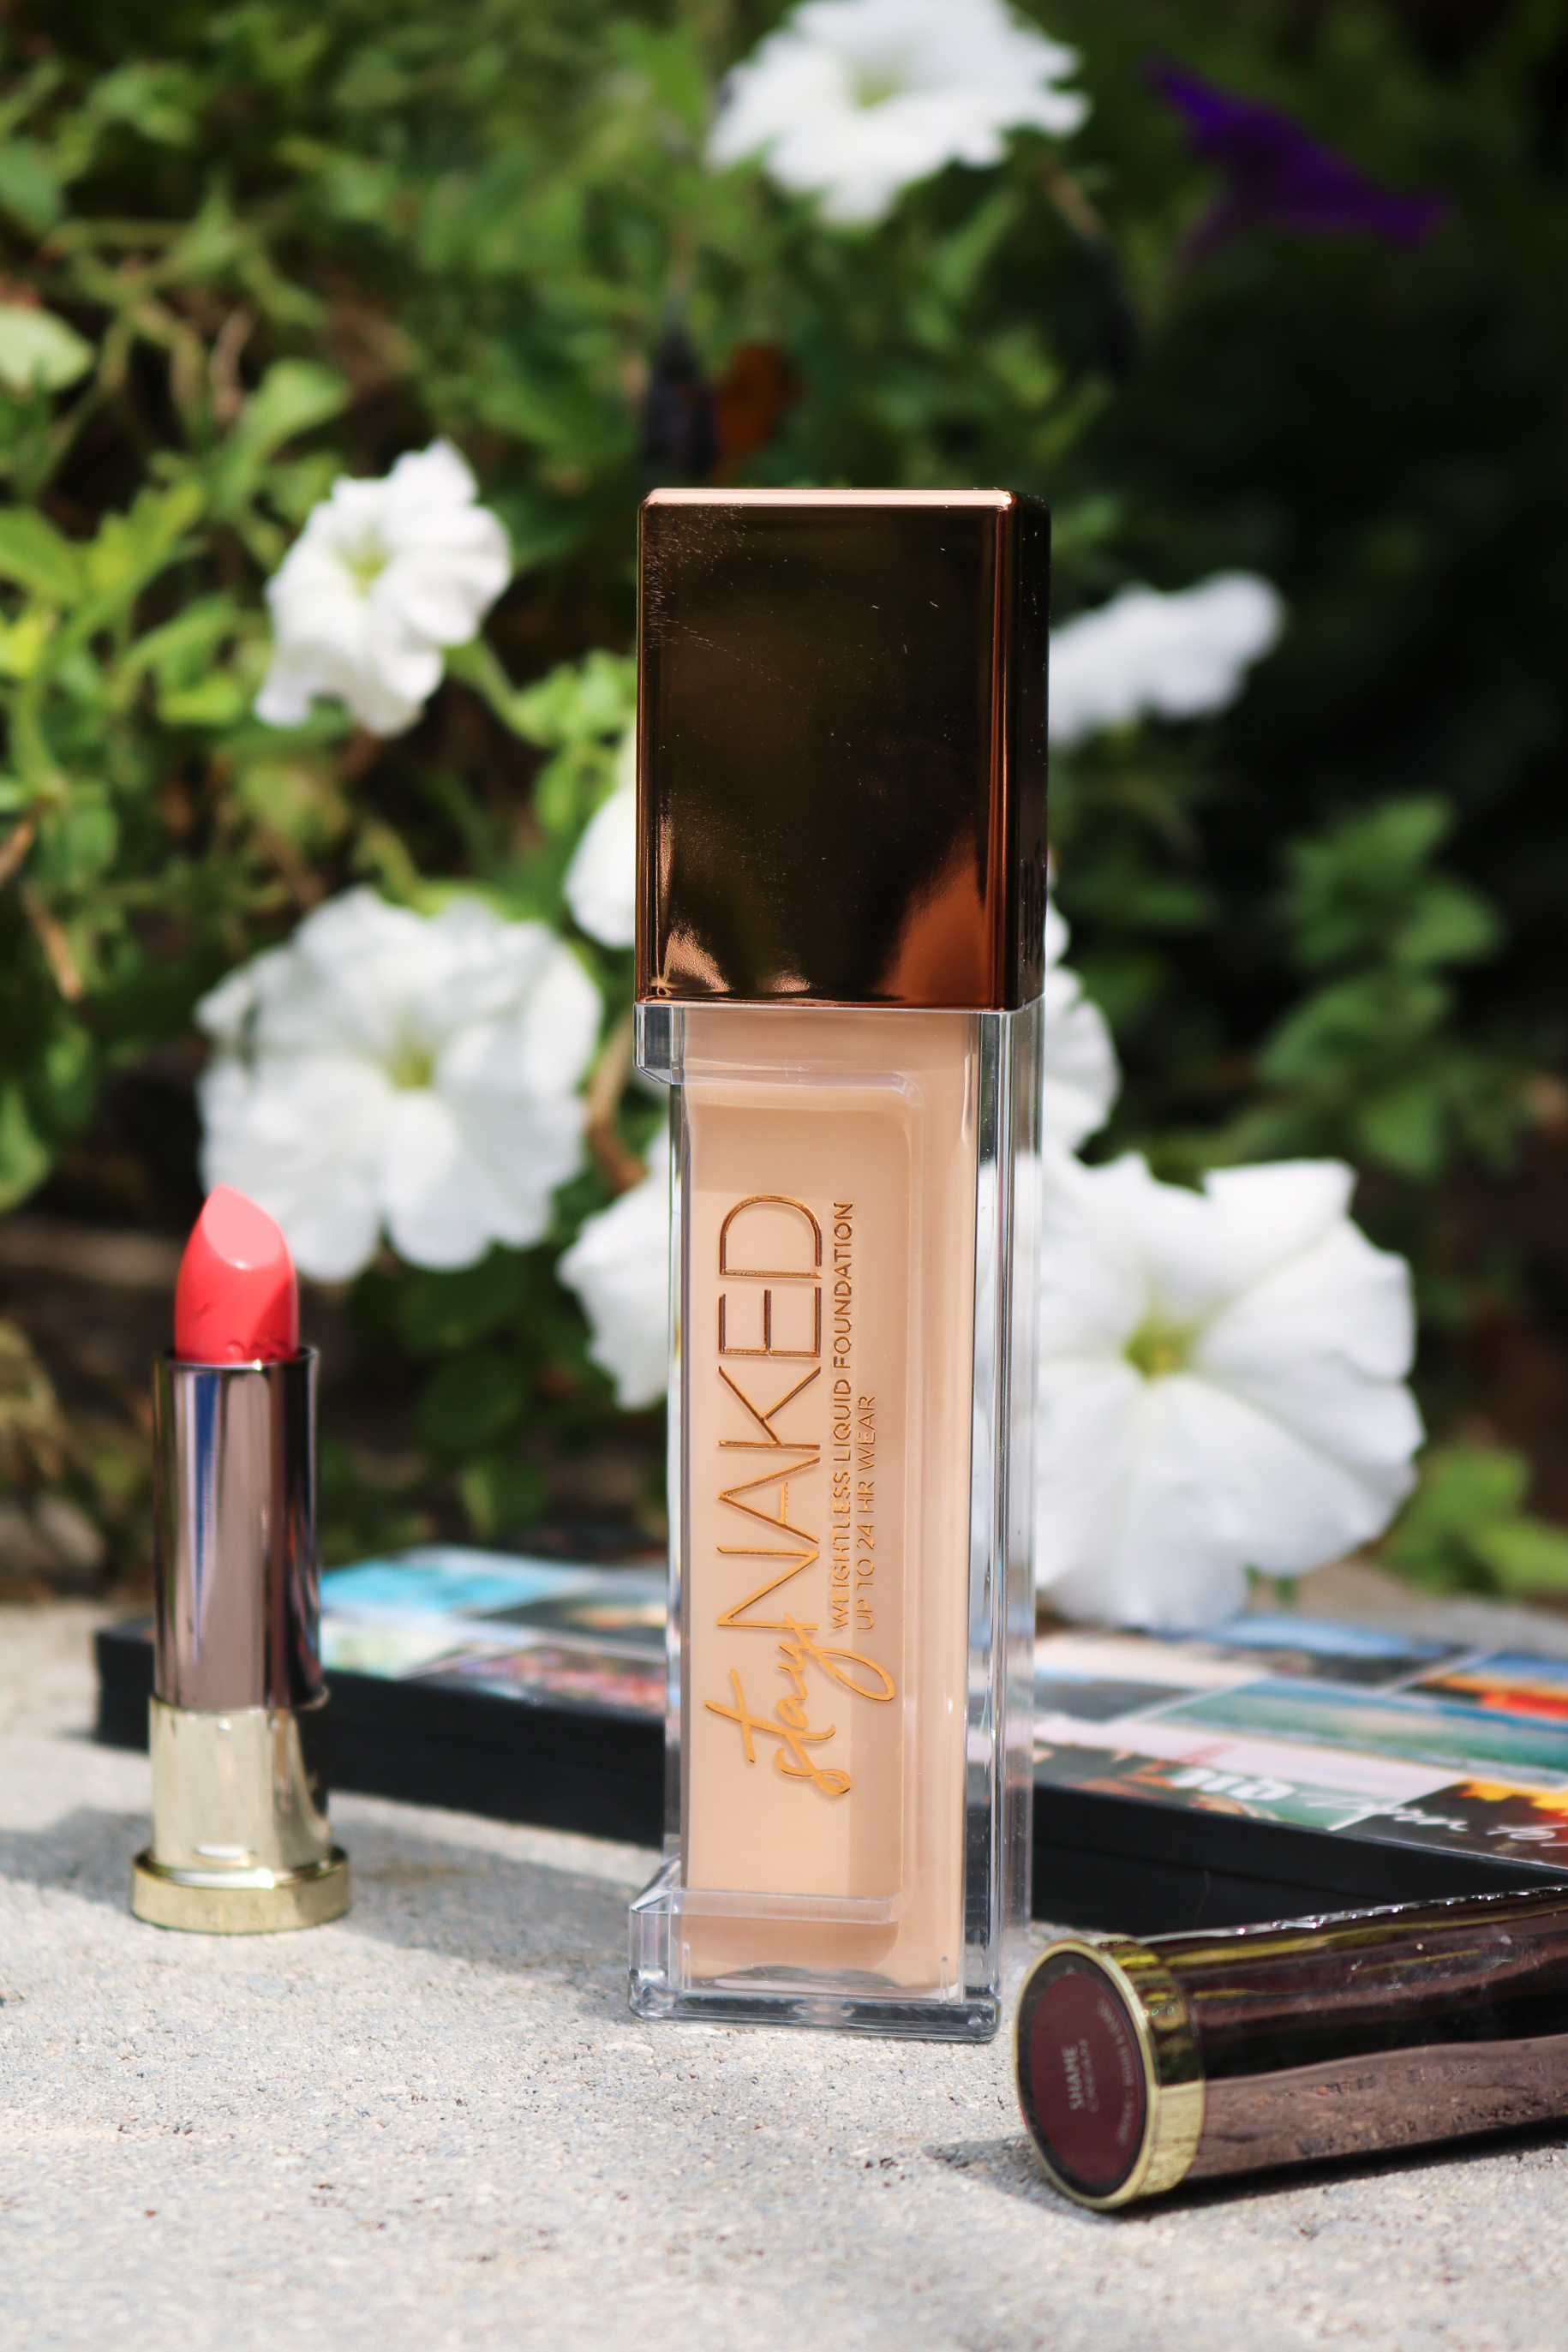 Urban Decay Naked Weightless Foundation Review I The most overrated foundation of all time? #urbandecay #veganmakeup #beautytips #beautyblog #makeupblog #makeup